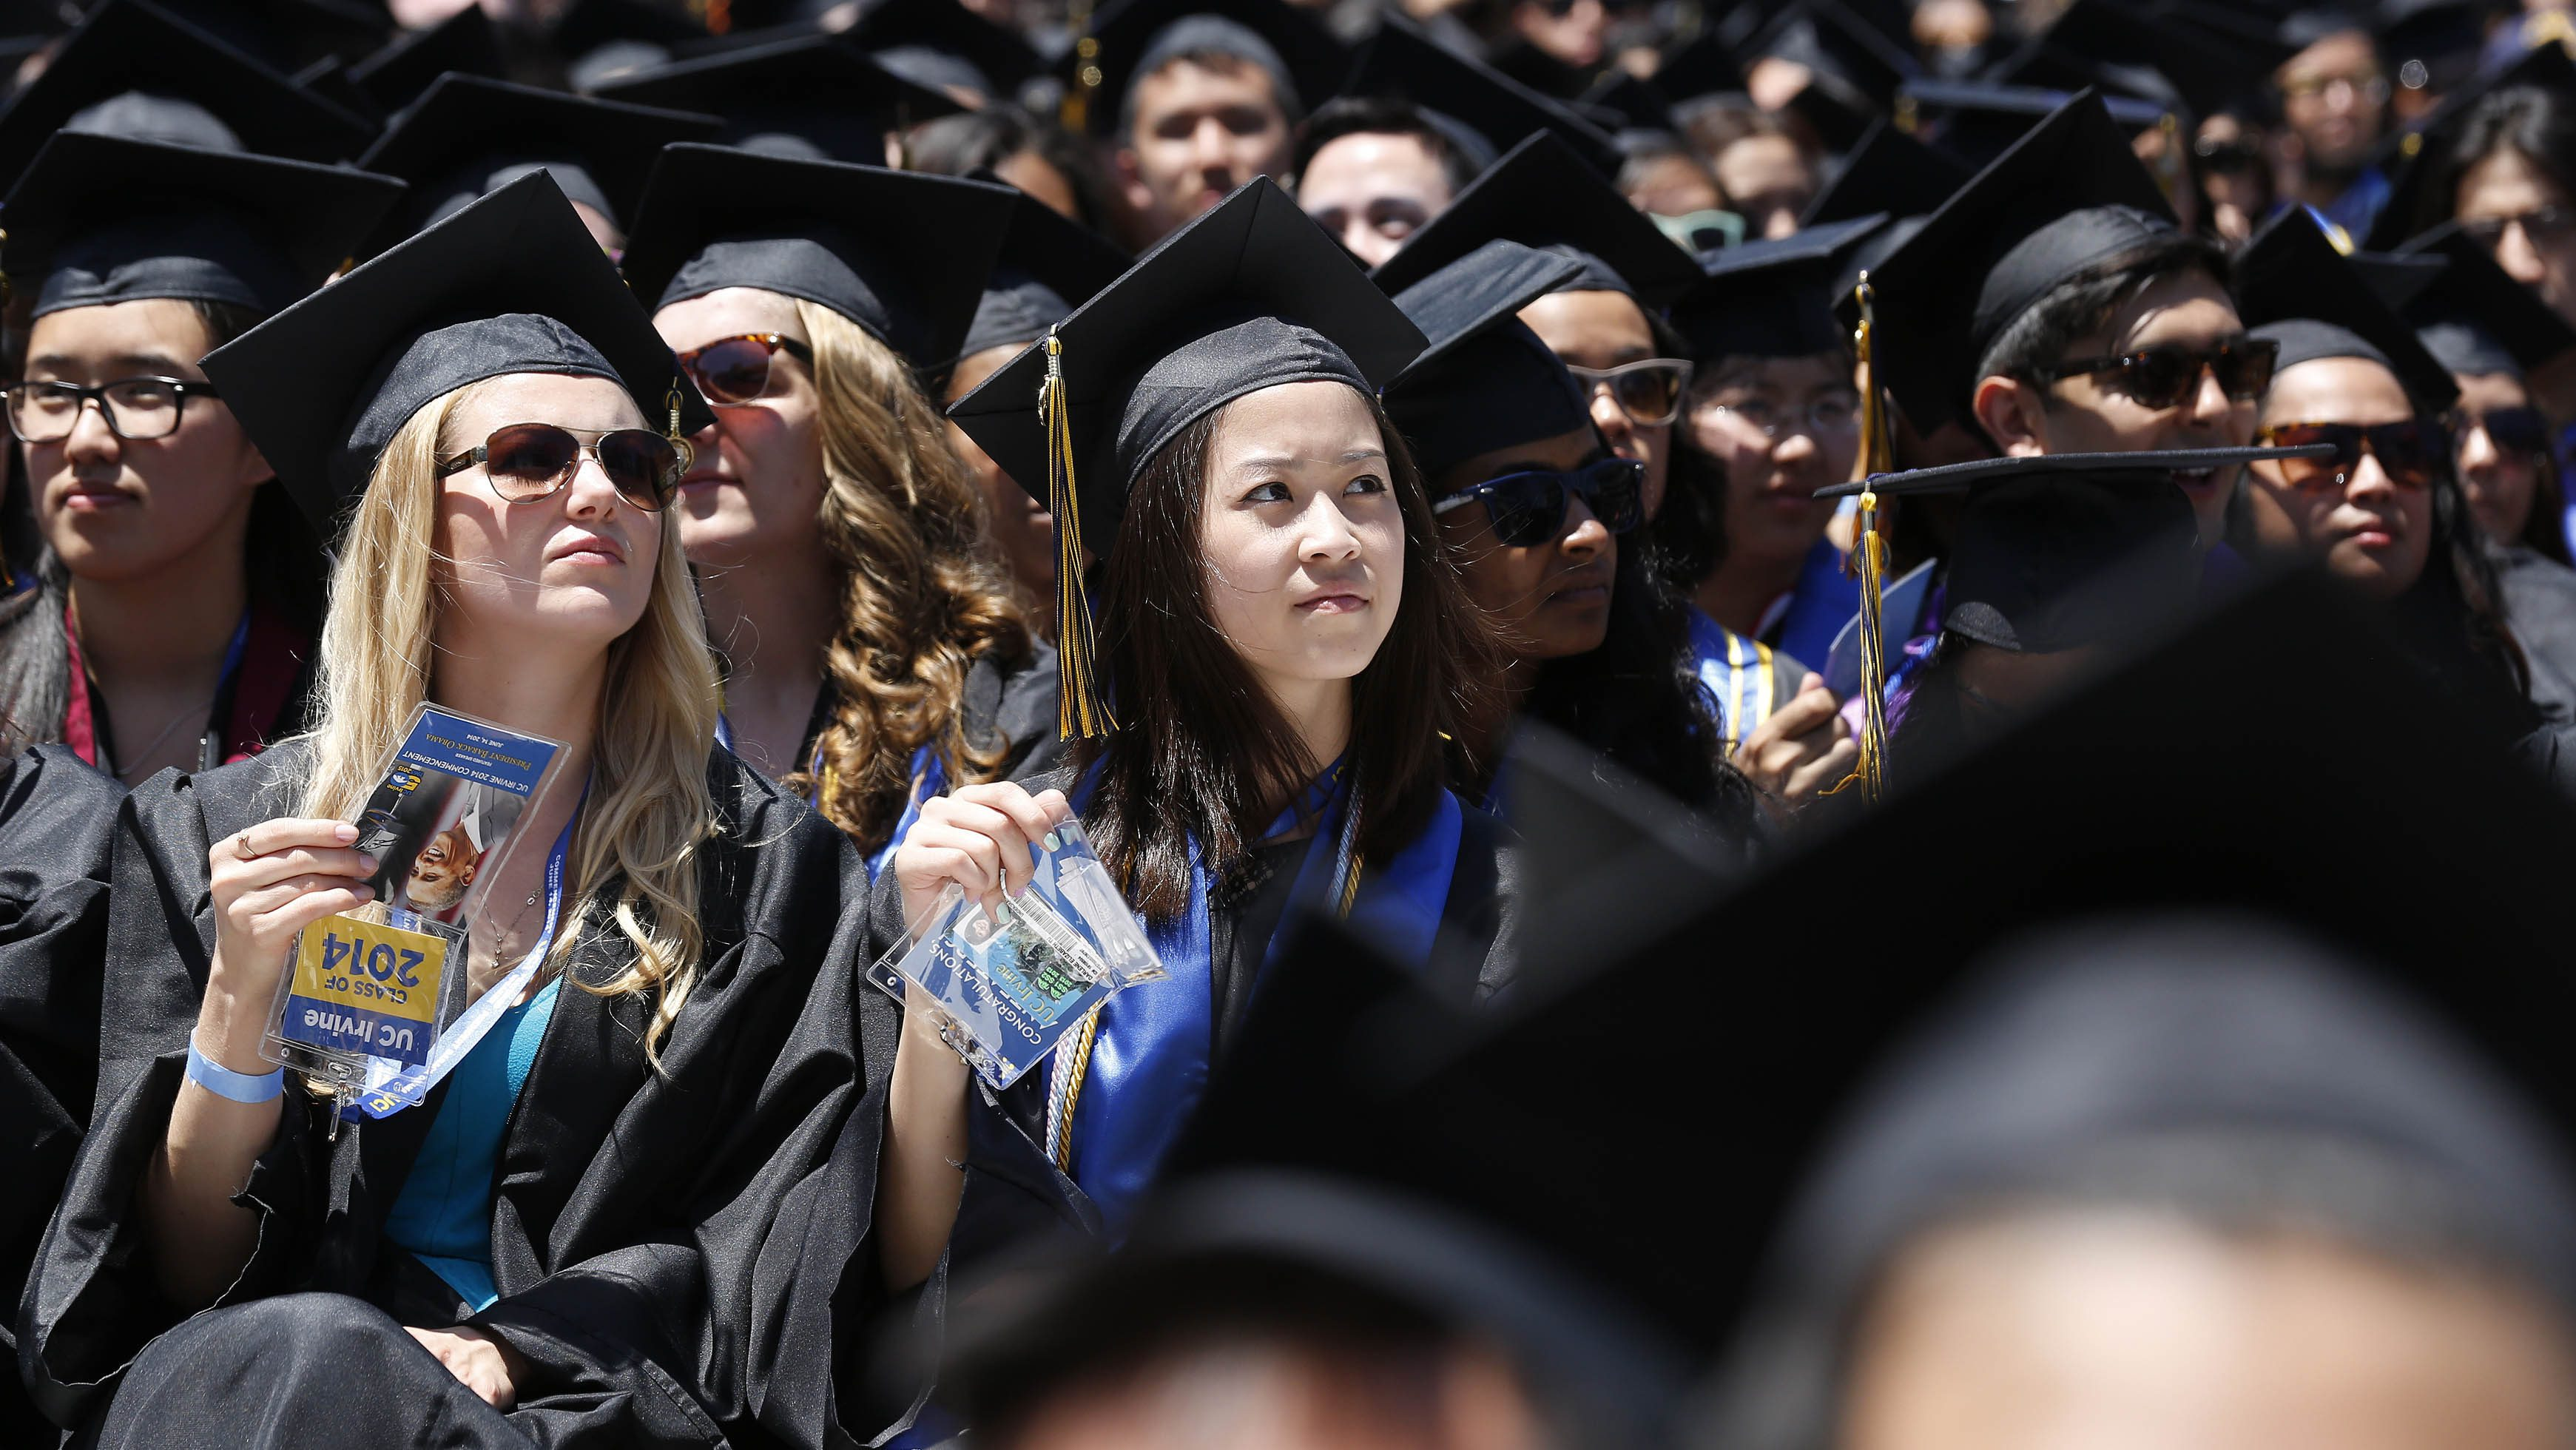 Graduates listen to U.S. President Obama talk during the commencement ceremony for the University of California, Irvine in Anaheim